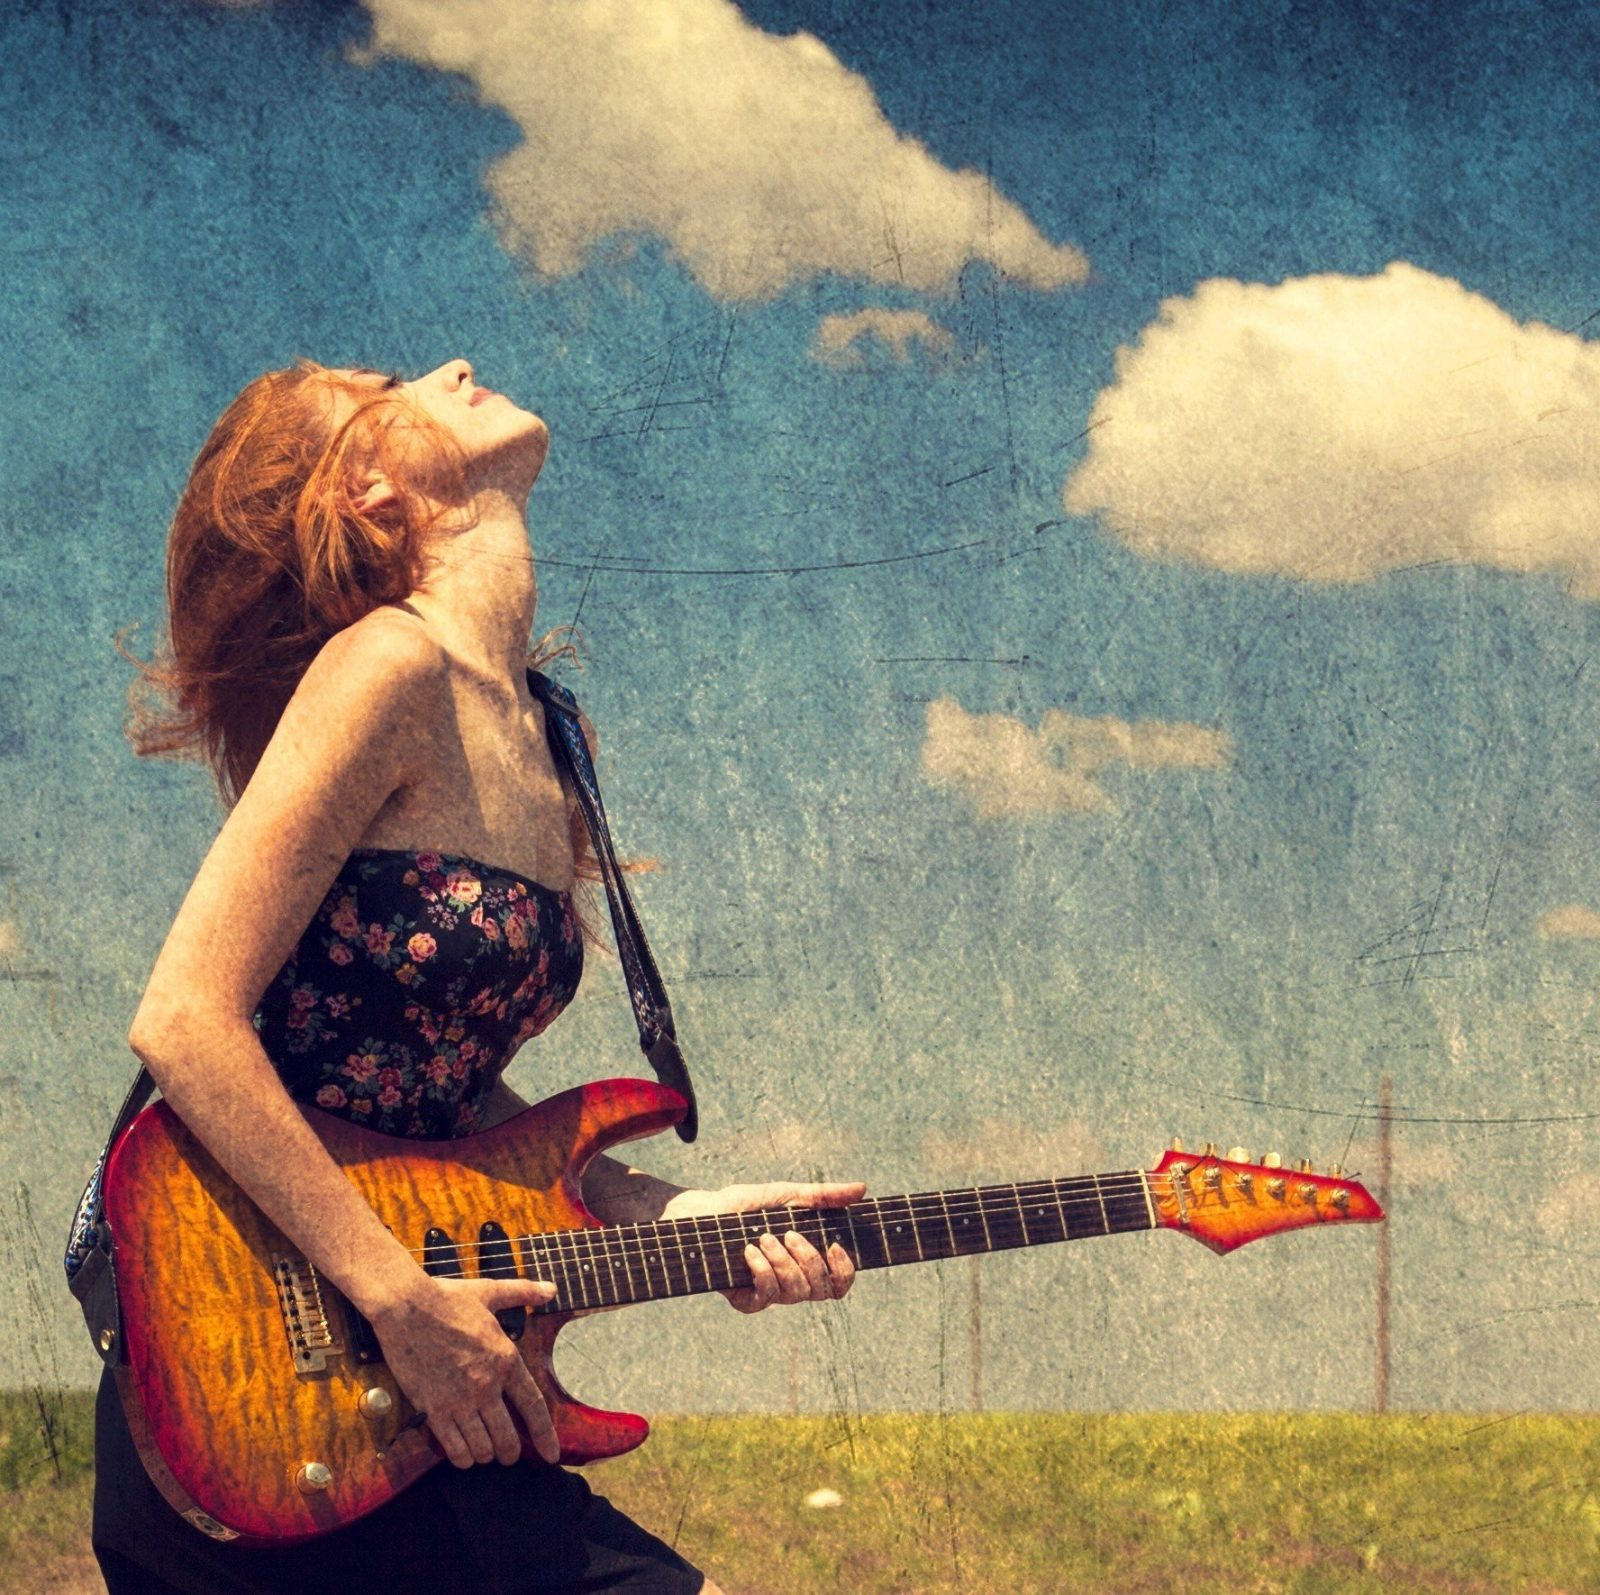 A girl is enjoying with guitar in open air